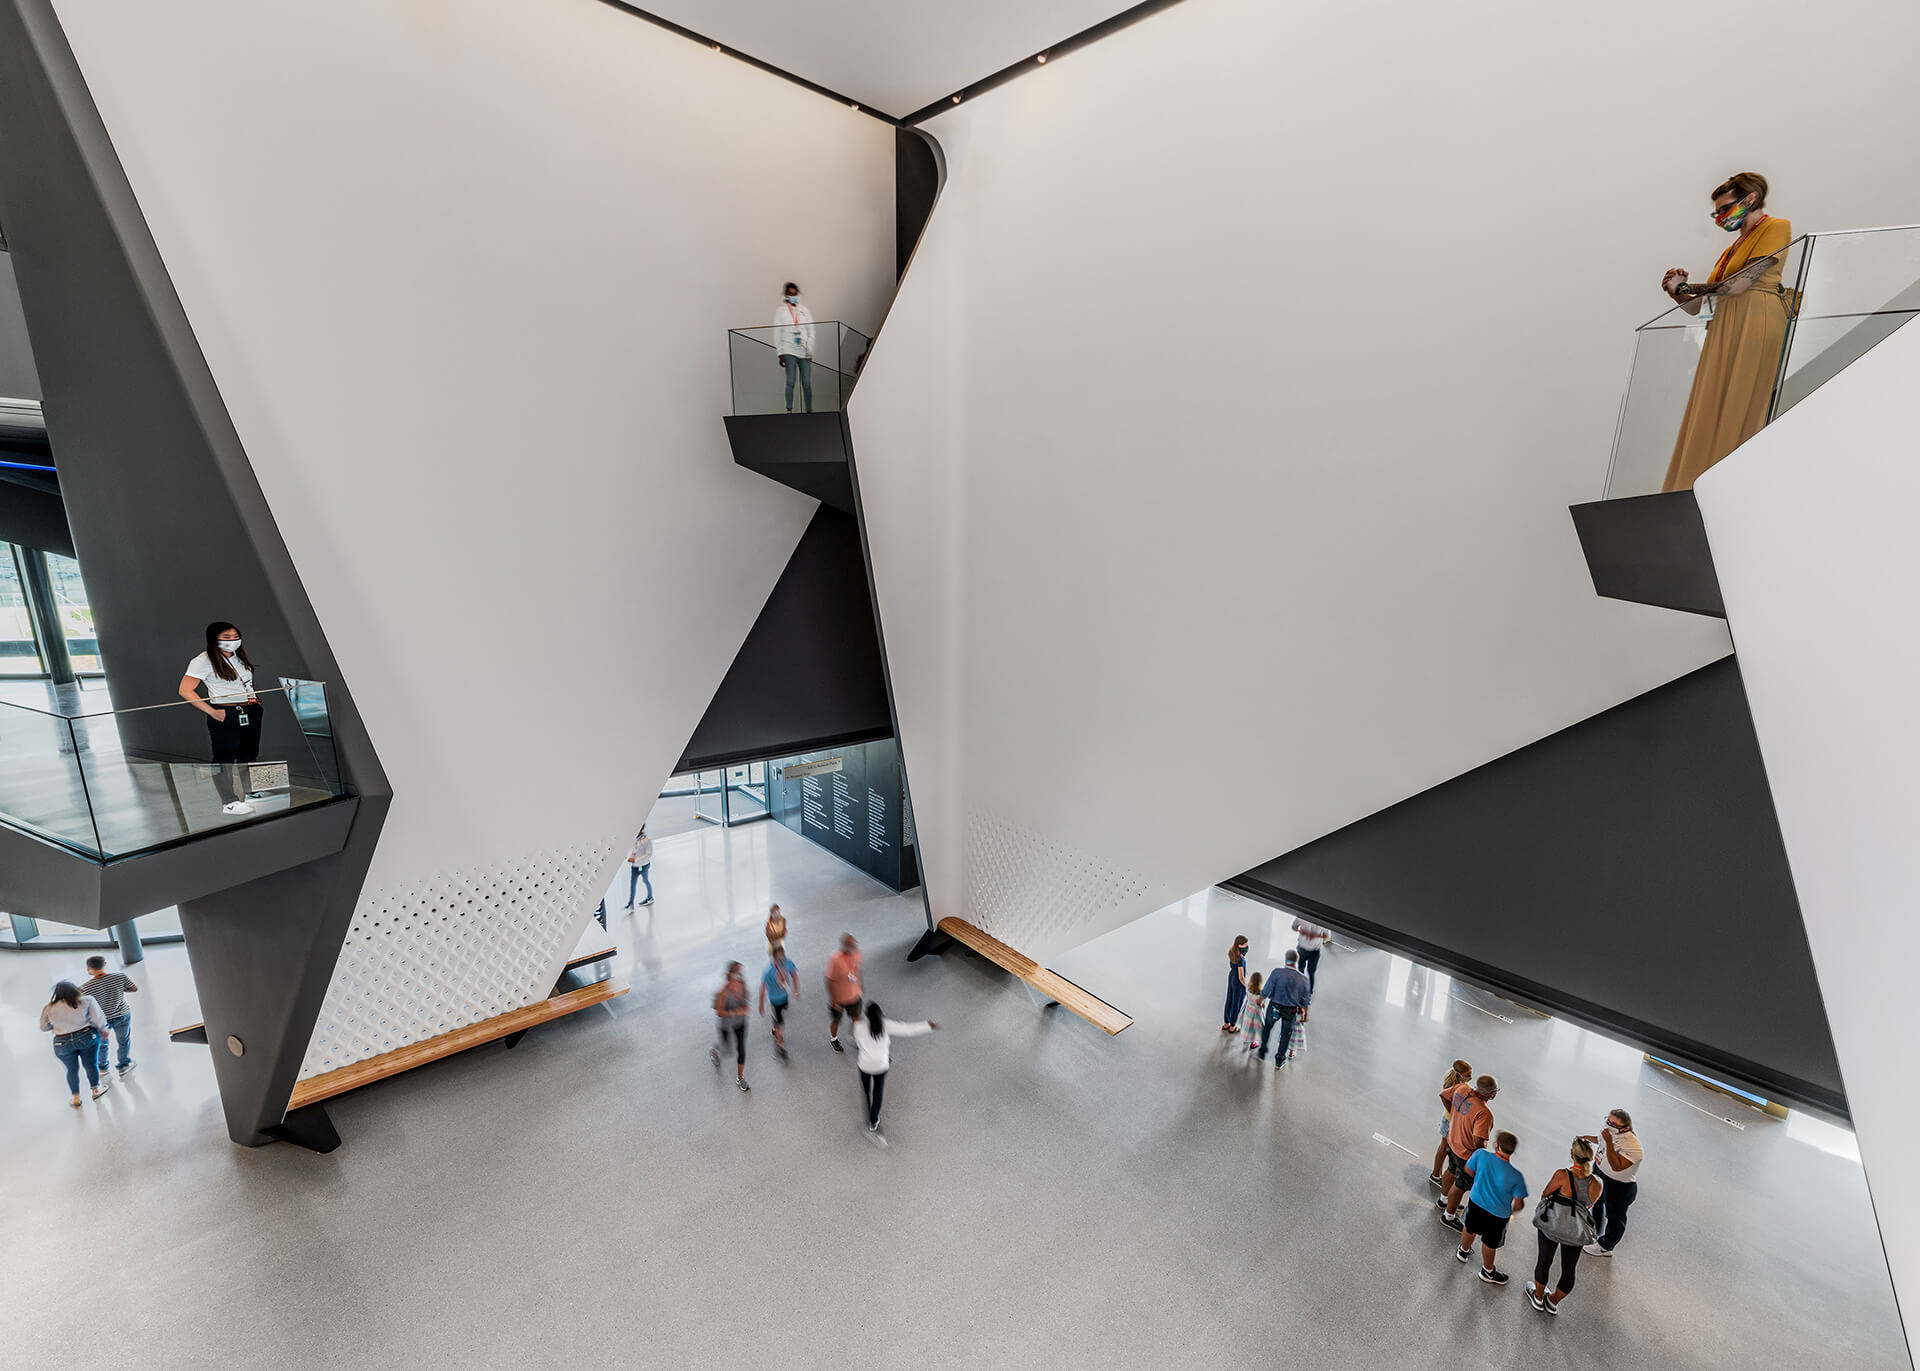 Balconies from galleries overlooking the central atrium for wayfinding | United States Olympic and Paralympic Museum | Diller Scofidio + Renfro | STIRworld